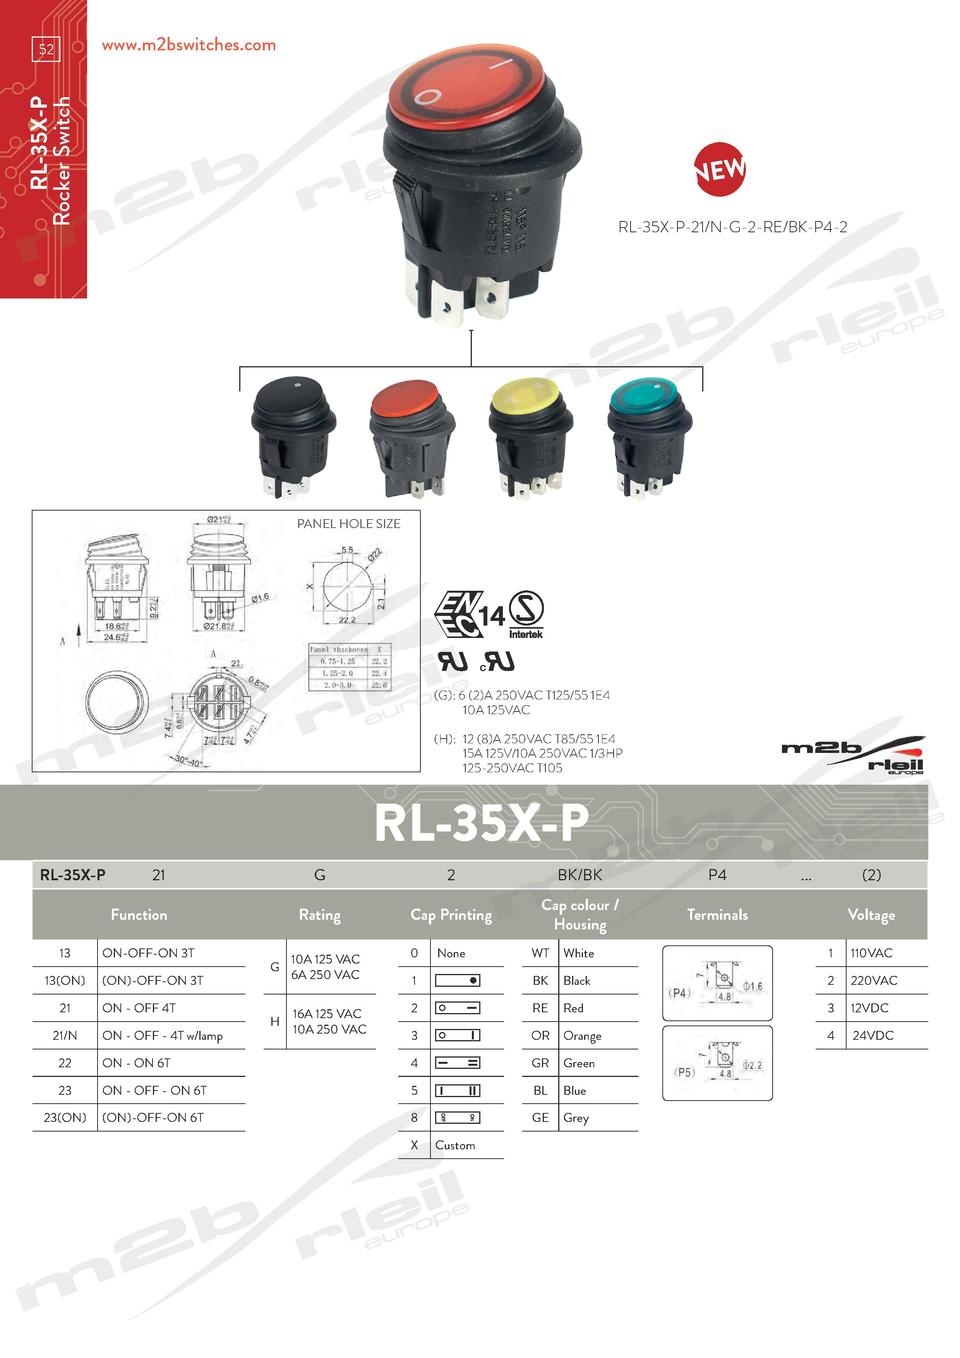 www.m2bswitches.com  RL-35X-P Rocker Switch  52  RL-35X-P-21 N-G-2-RE BK-P4-2  PANEL HOLE SIZE   G   6  2 A 250VAC T125 55...